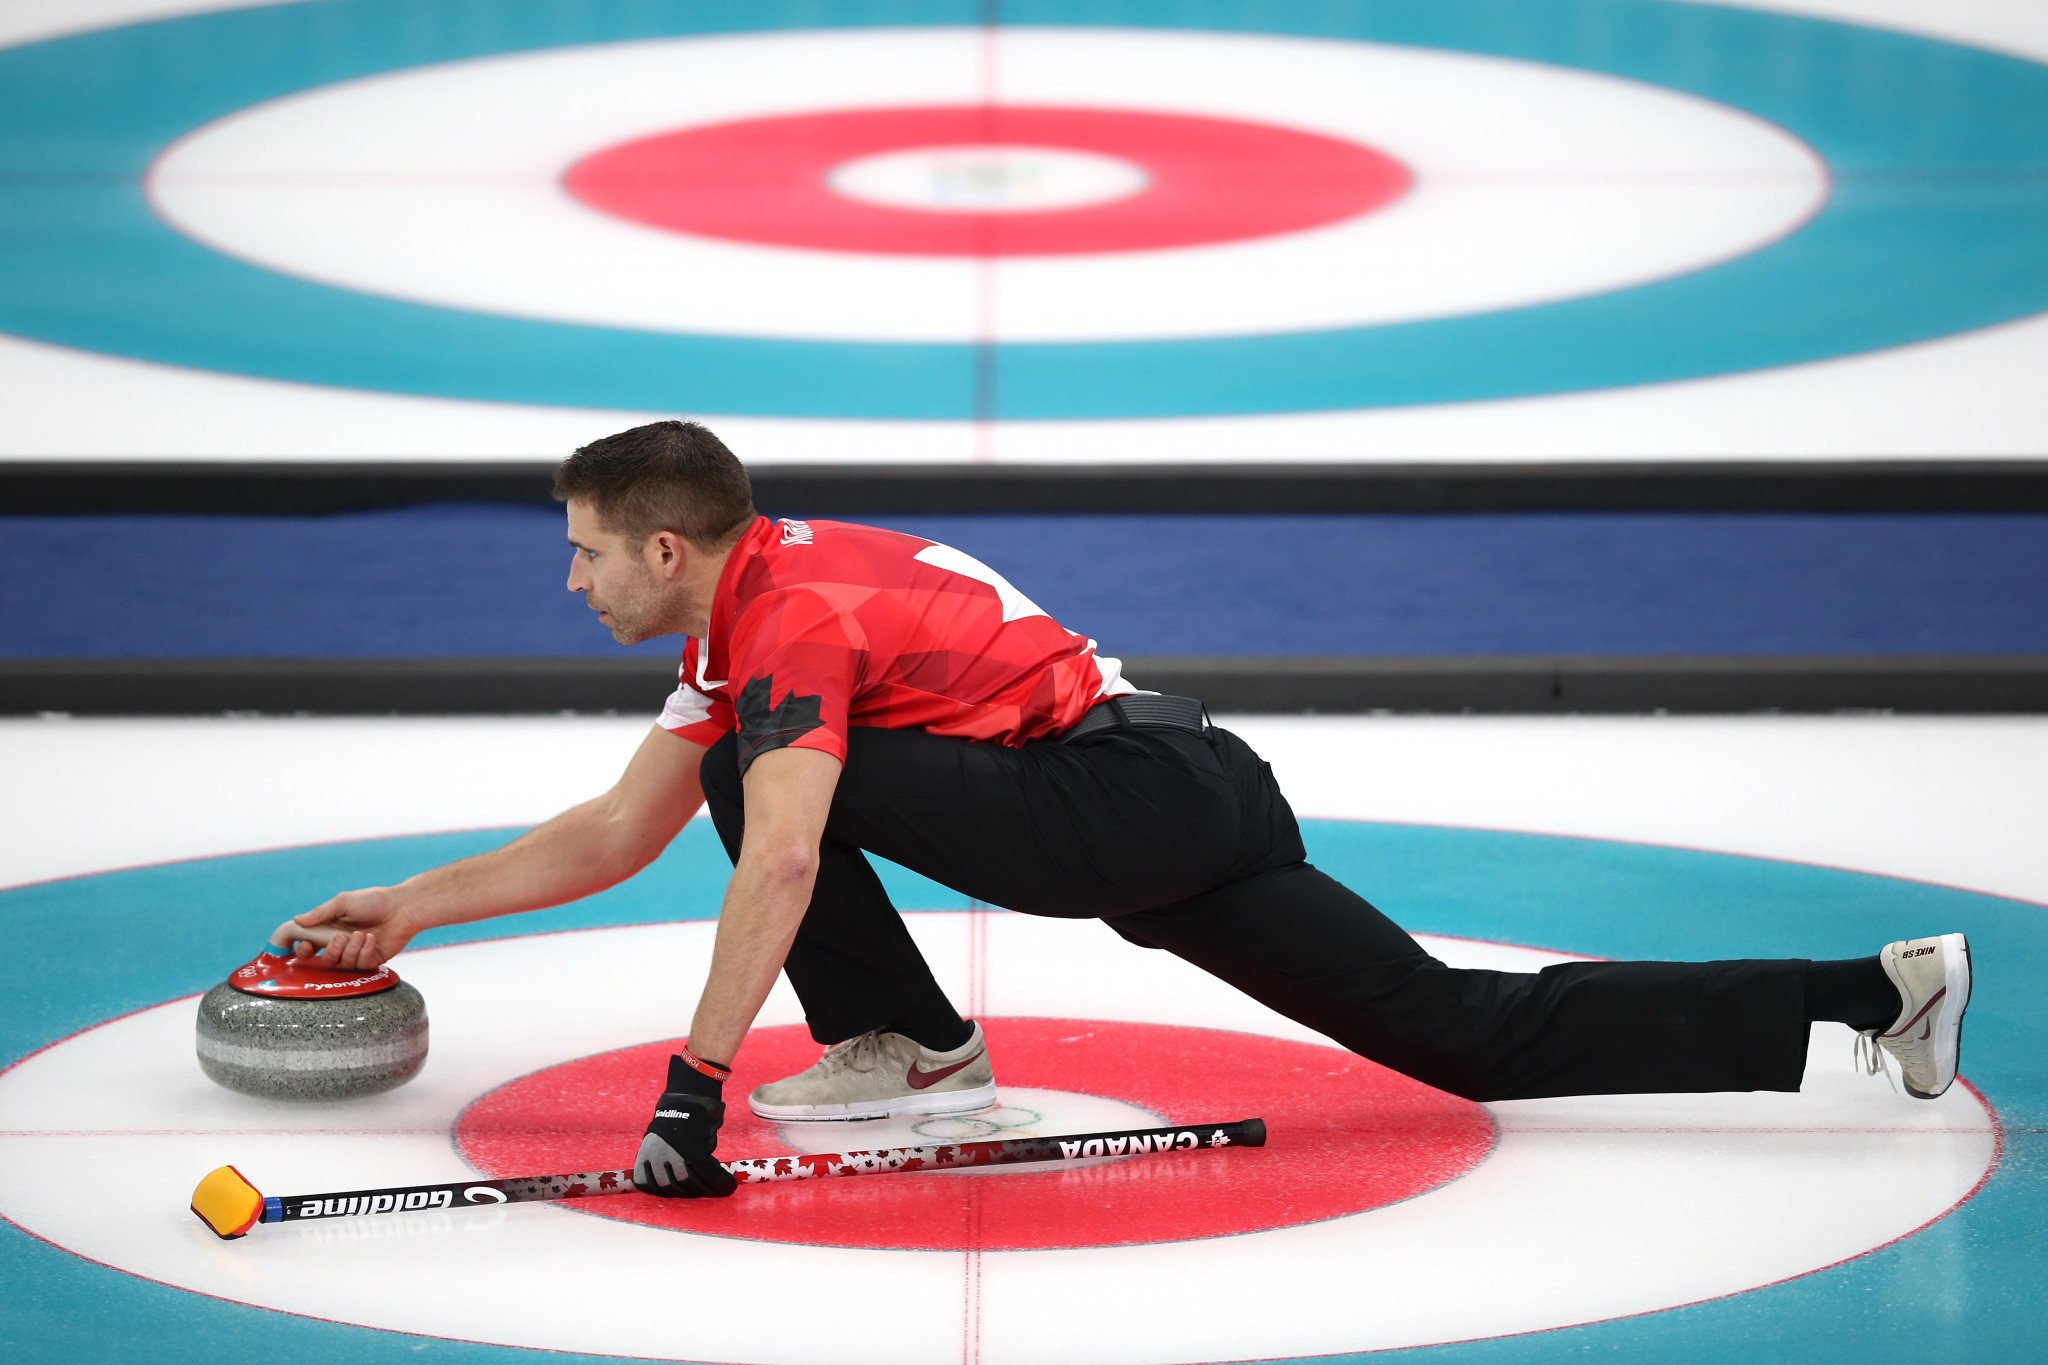 John Morris has reunited with friend and rival Kevin Koe, joining his team for next season ©Getty Images